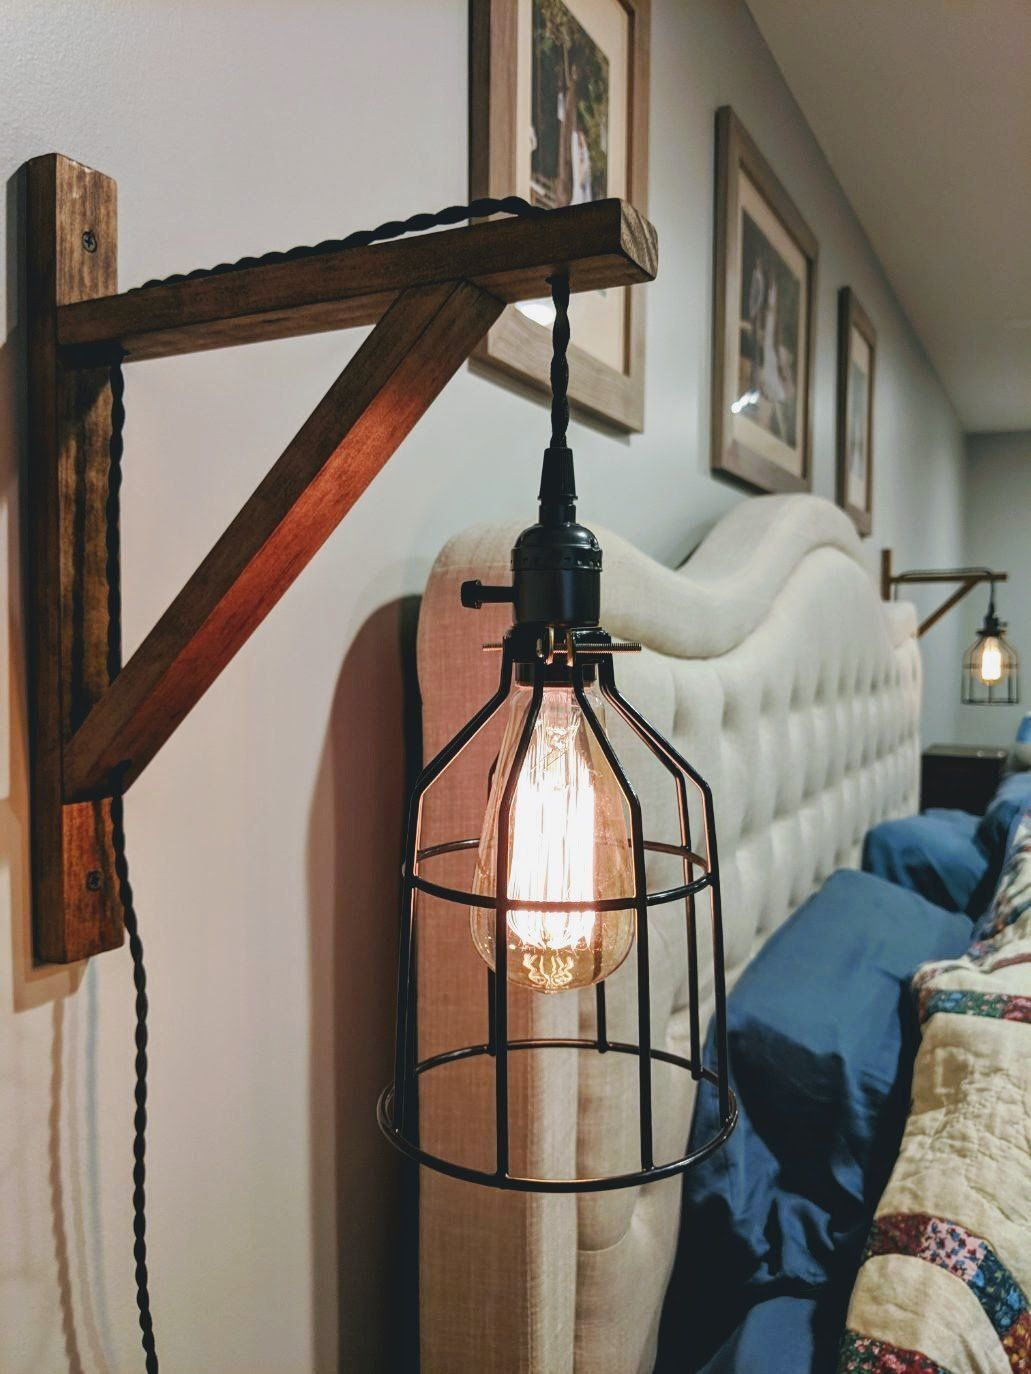 Hanging Wall Sconce Our Wall Sconce Is A Great Way To Add Some Lighting To Your Bed Industrial Decor Bedroom Industrial Decor Living Room Bedroom Decor Design